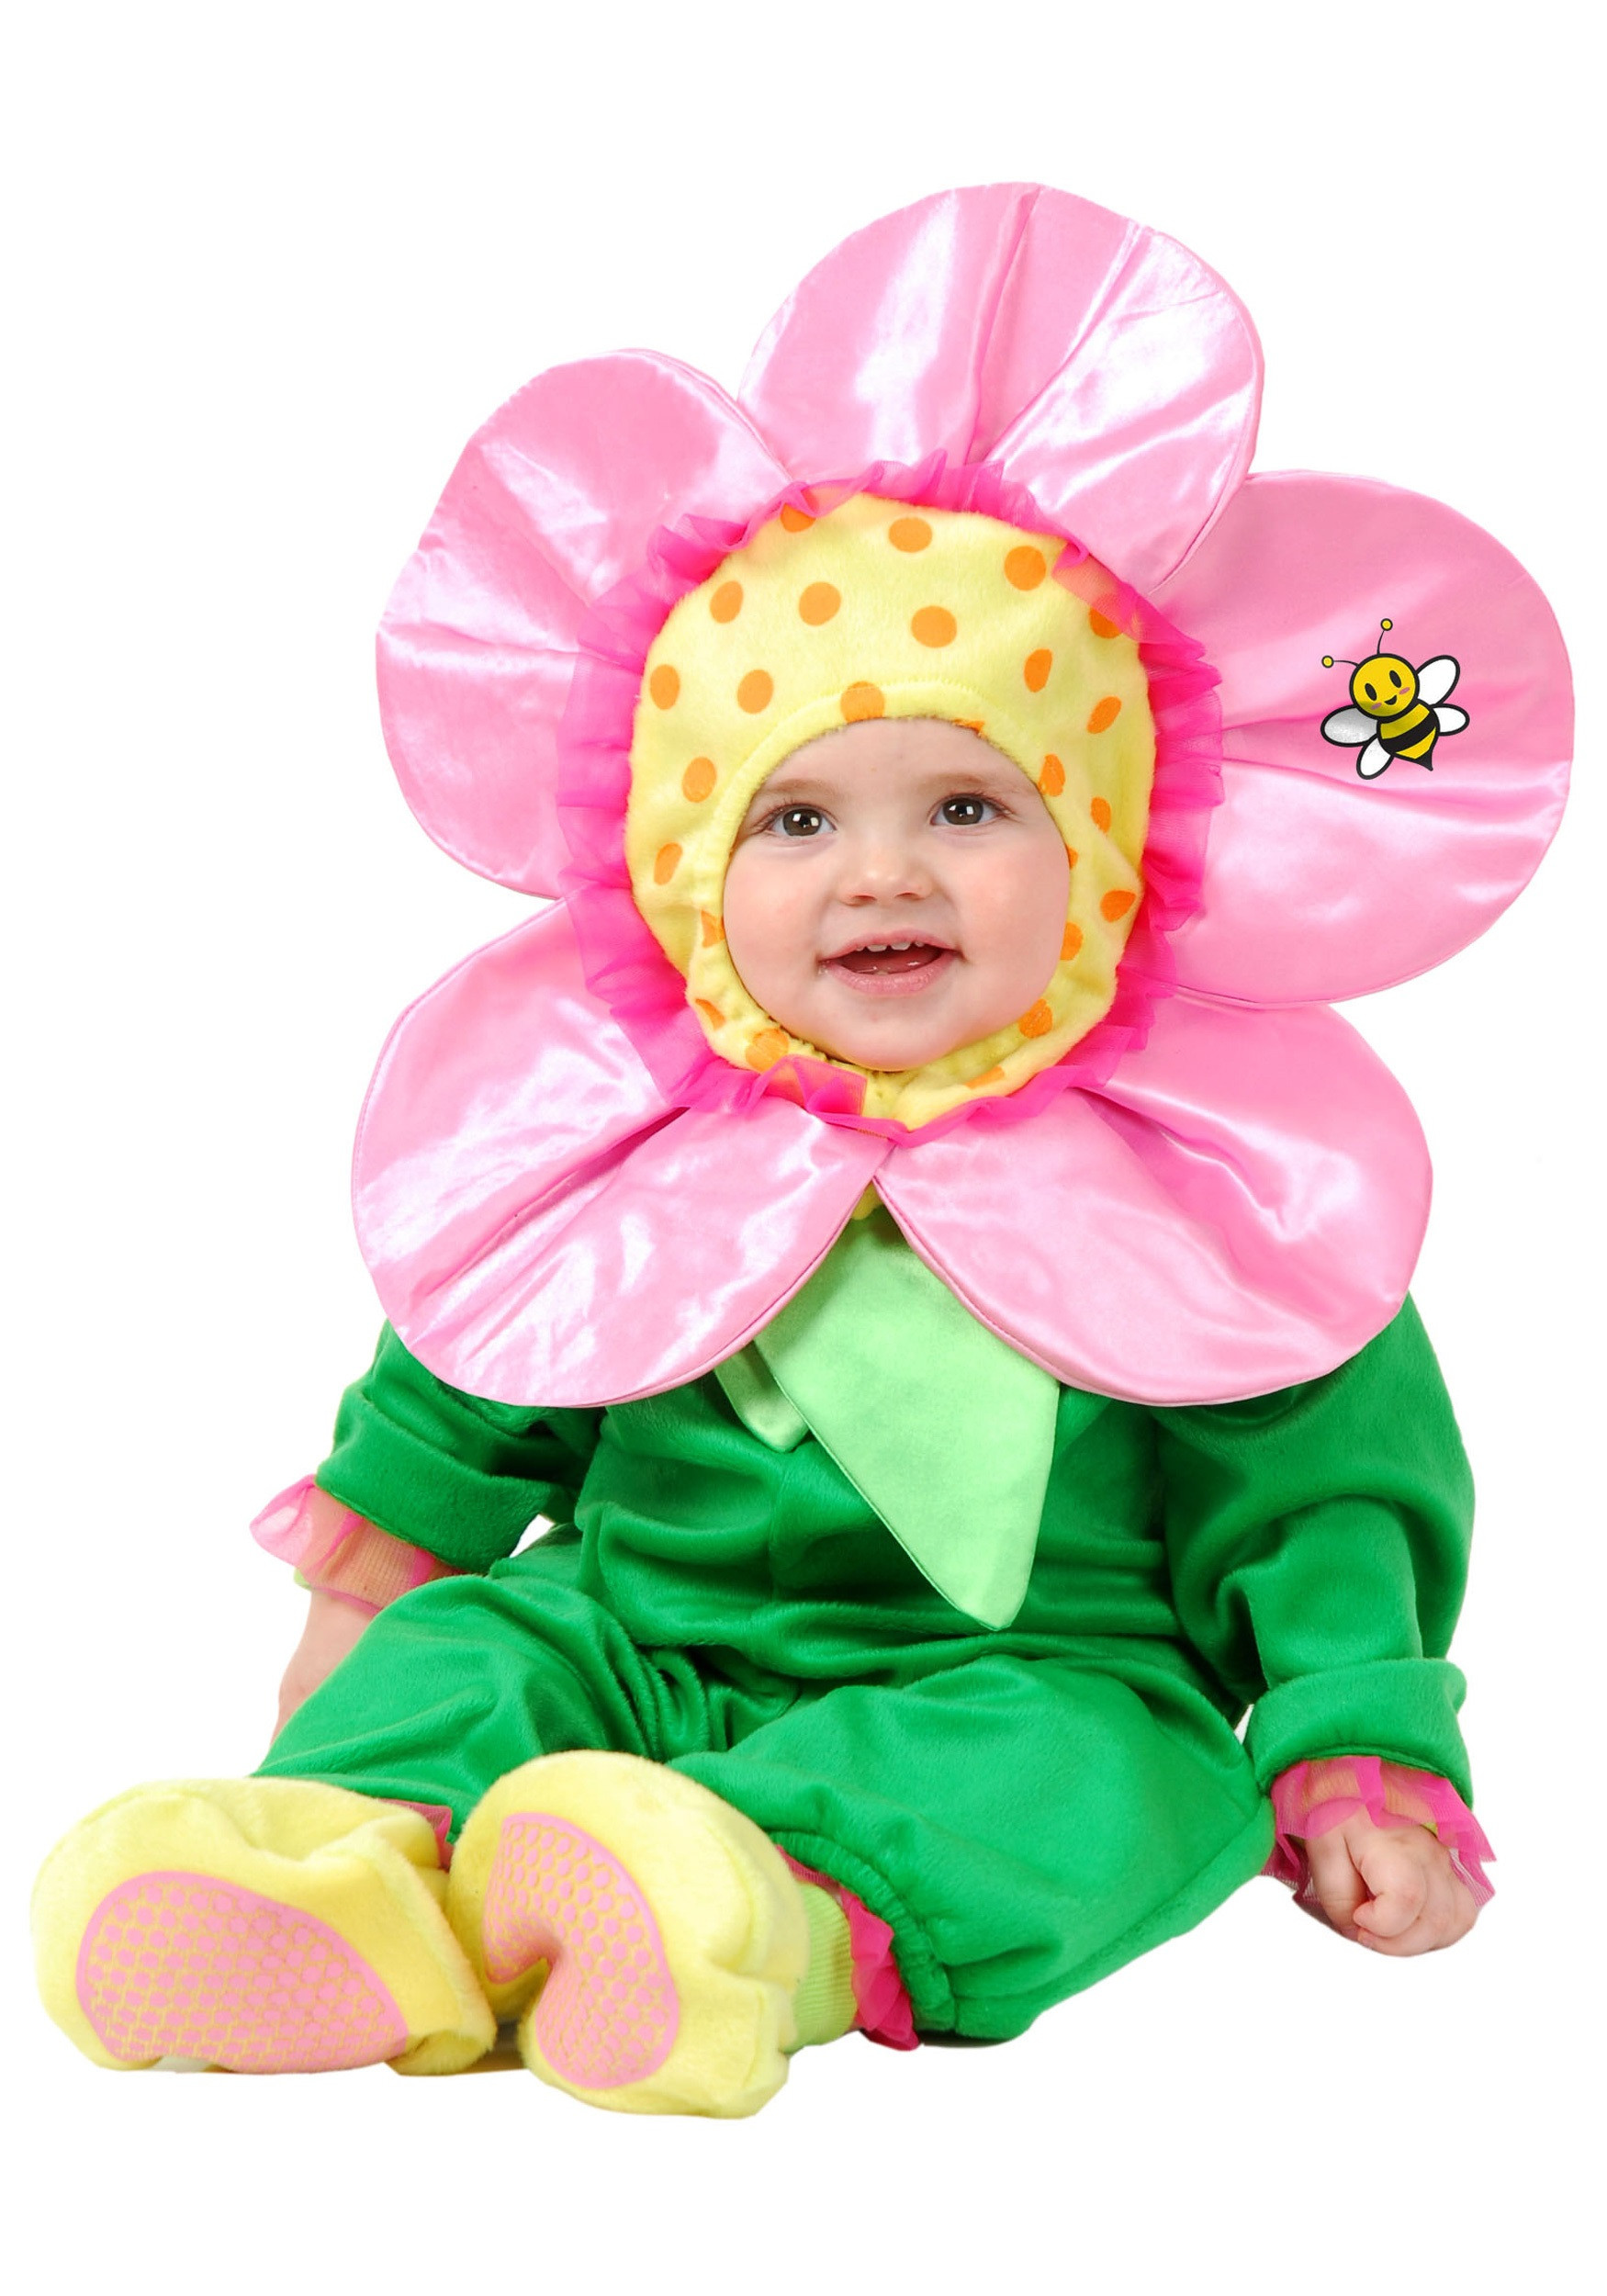 Baby Flower Halloween Costumes  Little Flower Baby Costume Infant and Toddler Easter